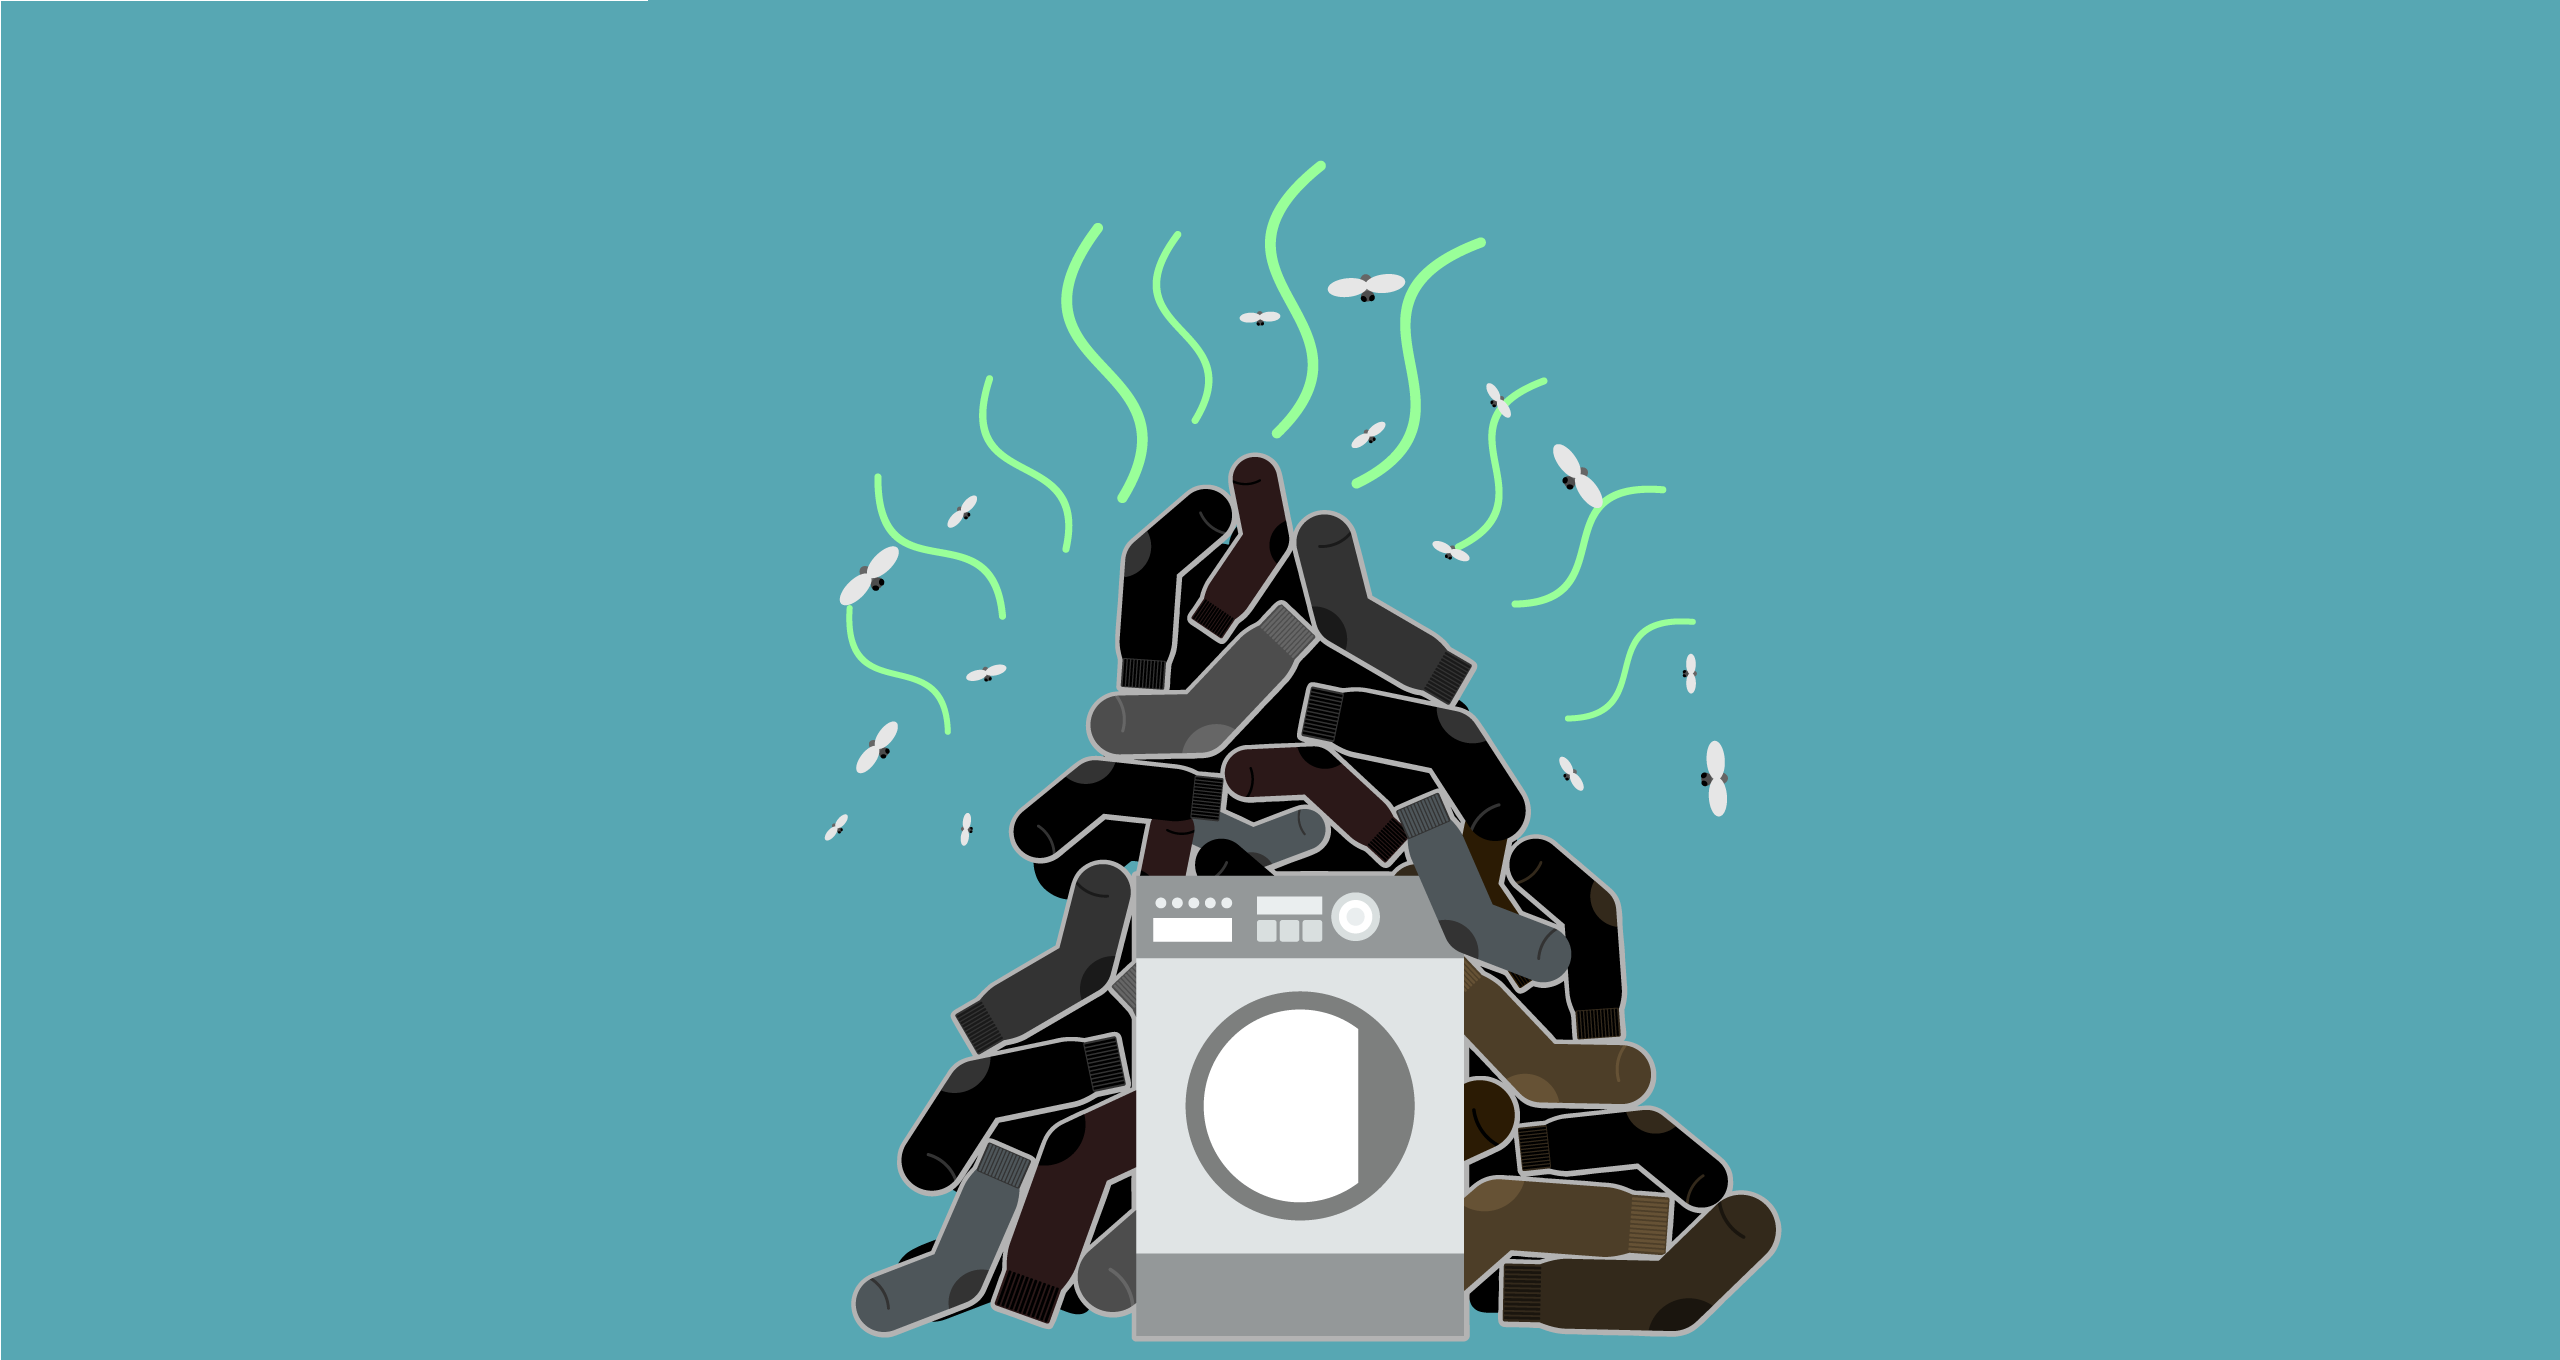 Got Dirty Laundry? The Internet Knows About It!